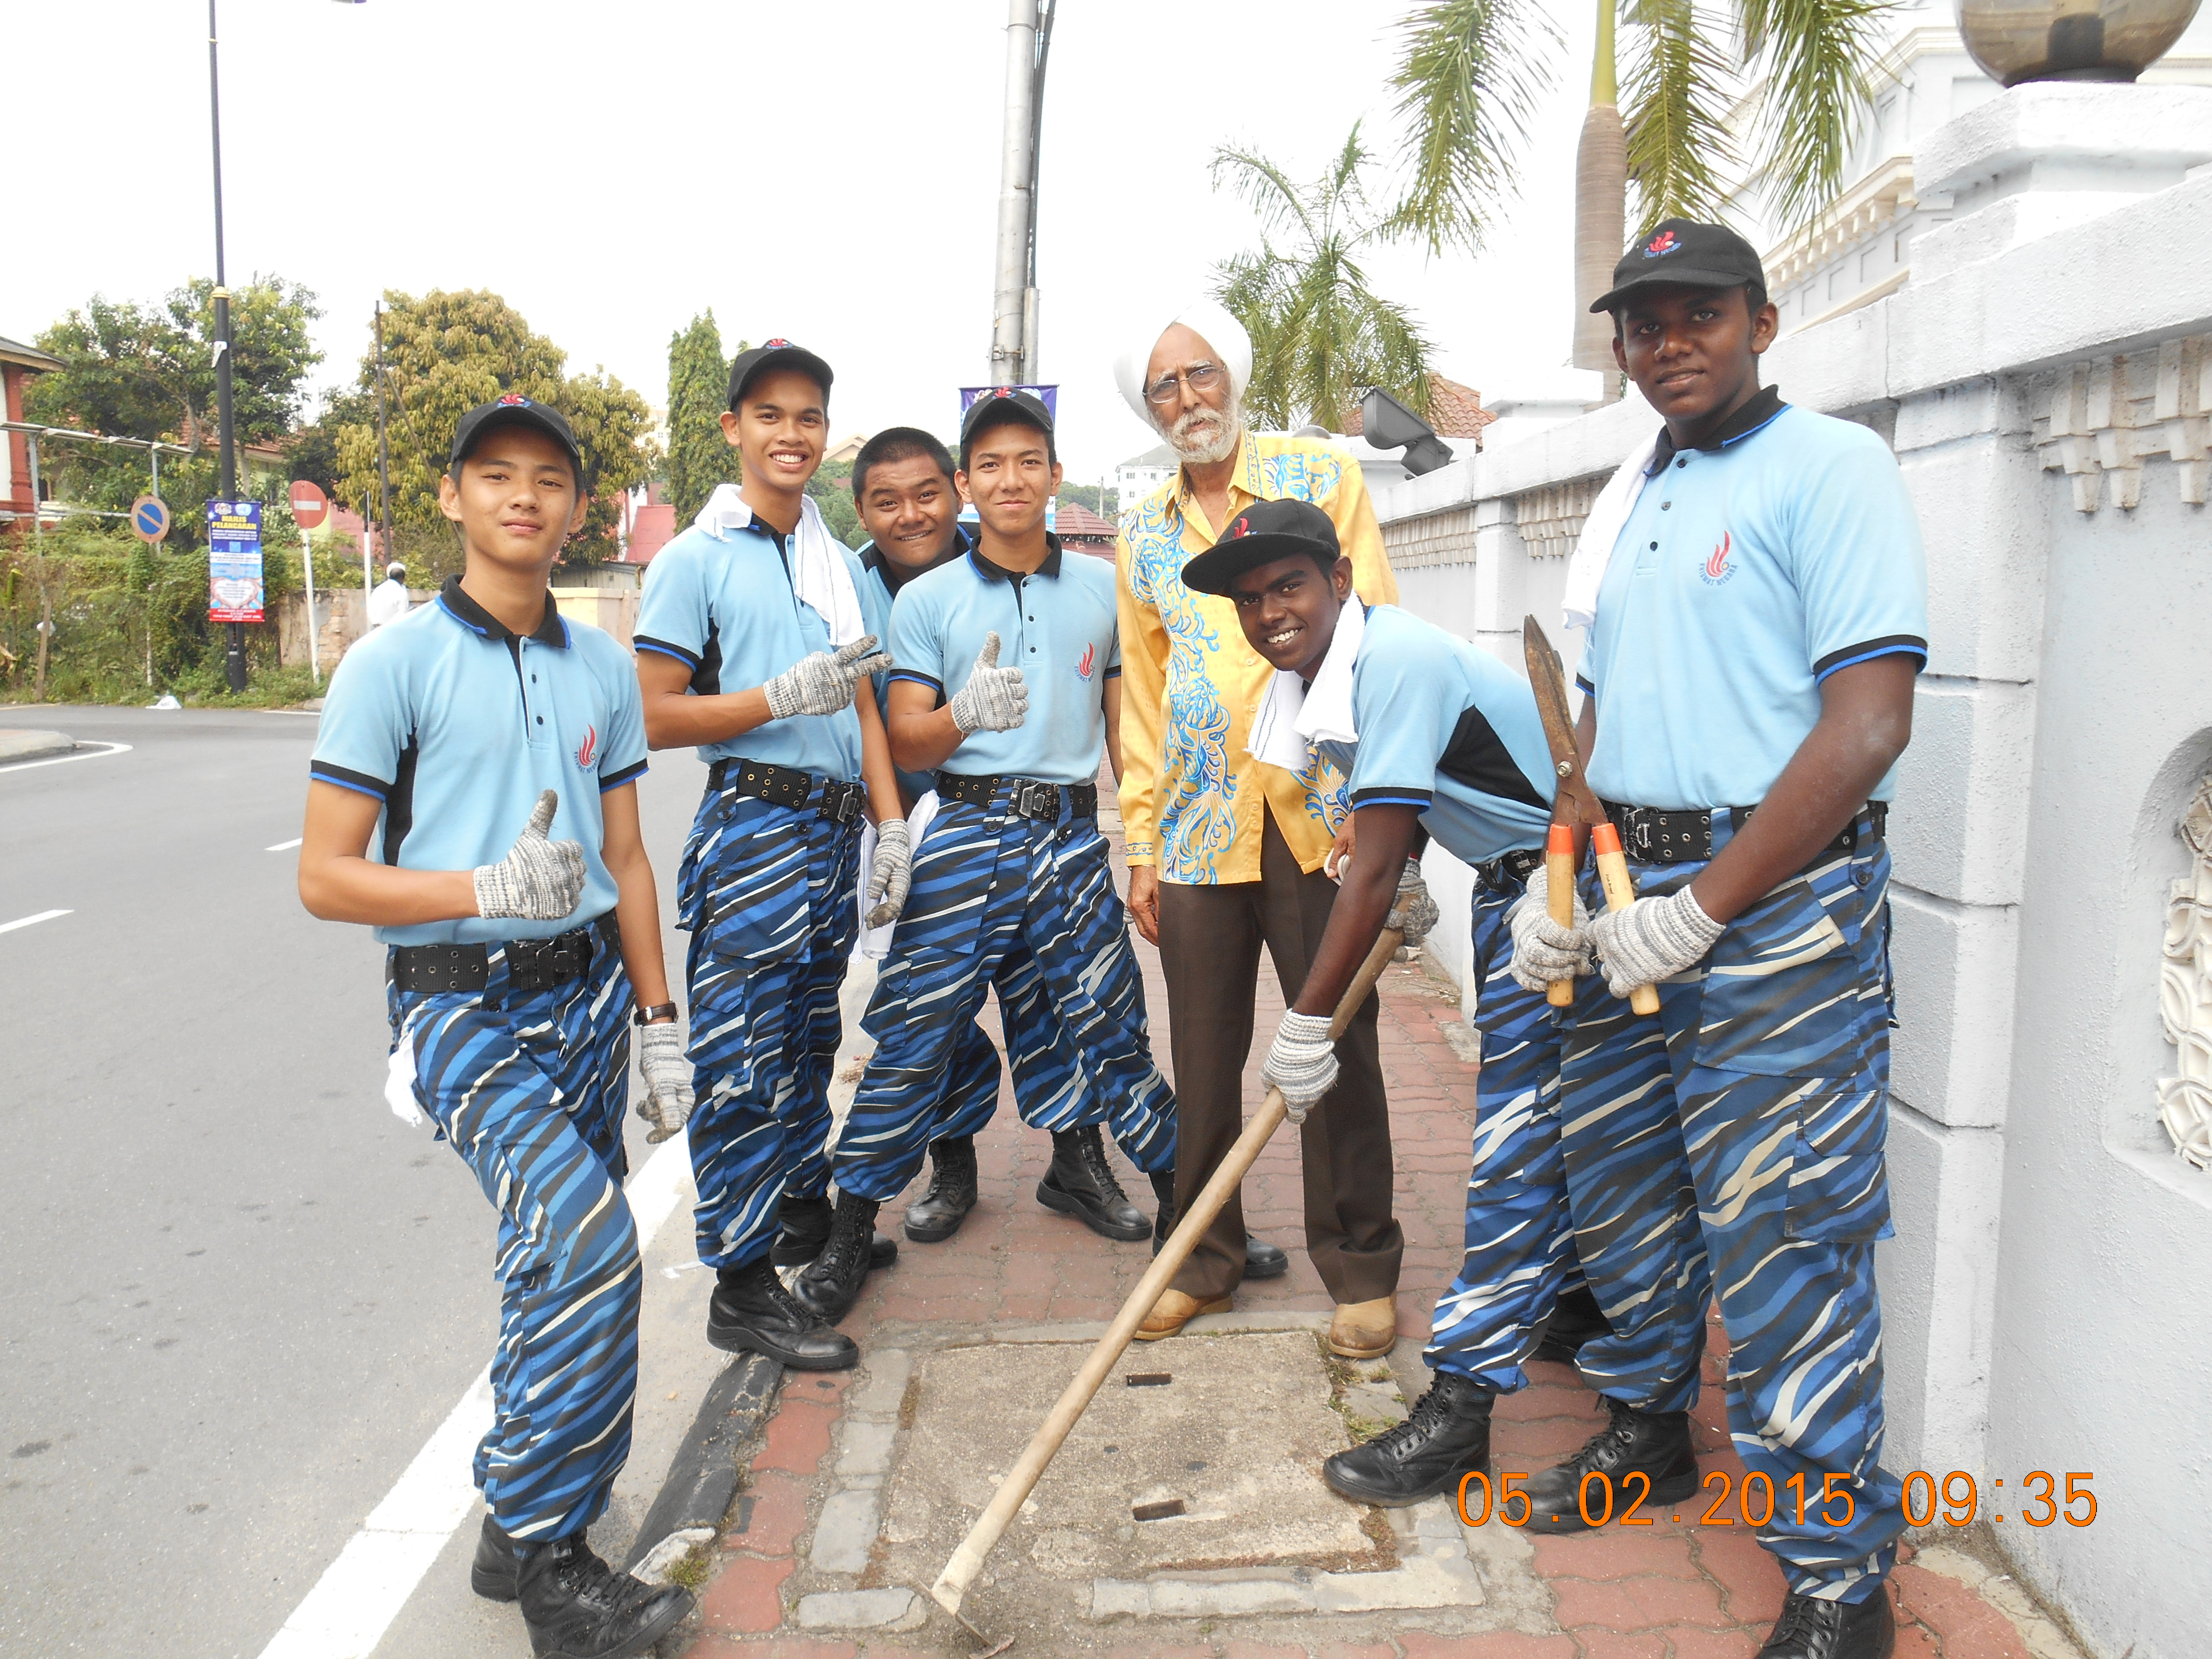 JKMPKA members with Youth volunteers of all religious background helping to clean the Masjid compond in Klang.JPG